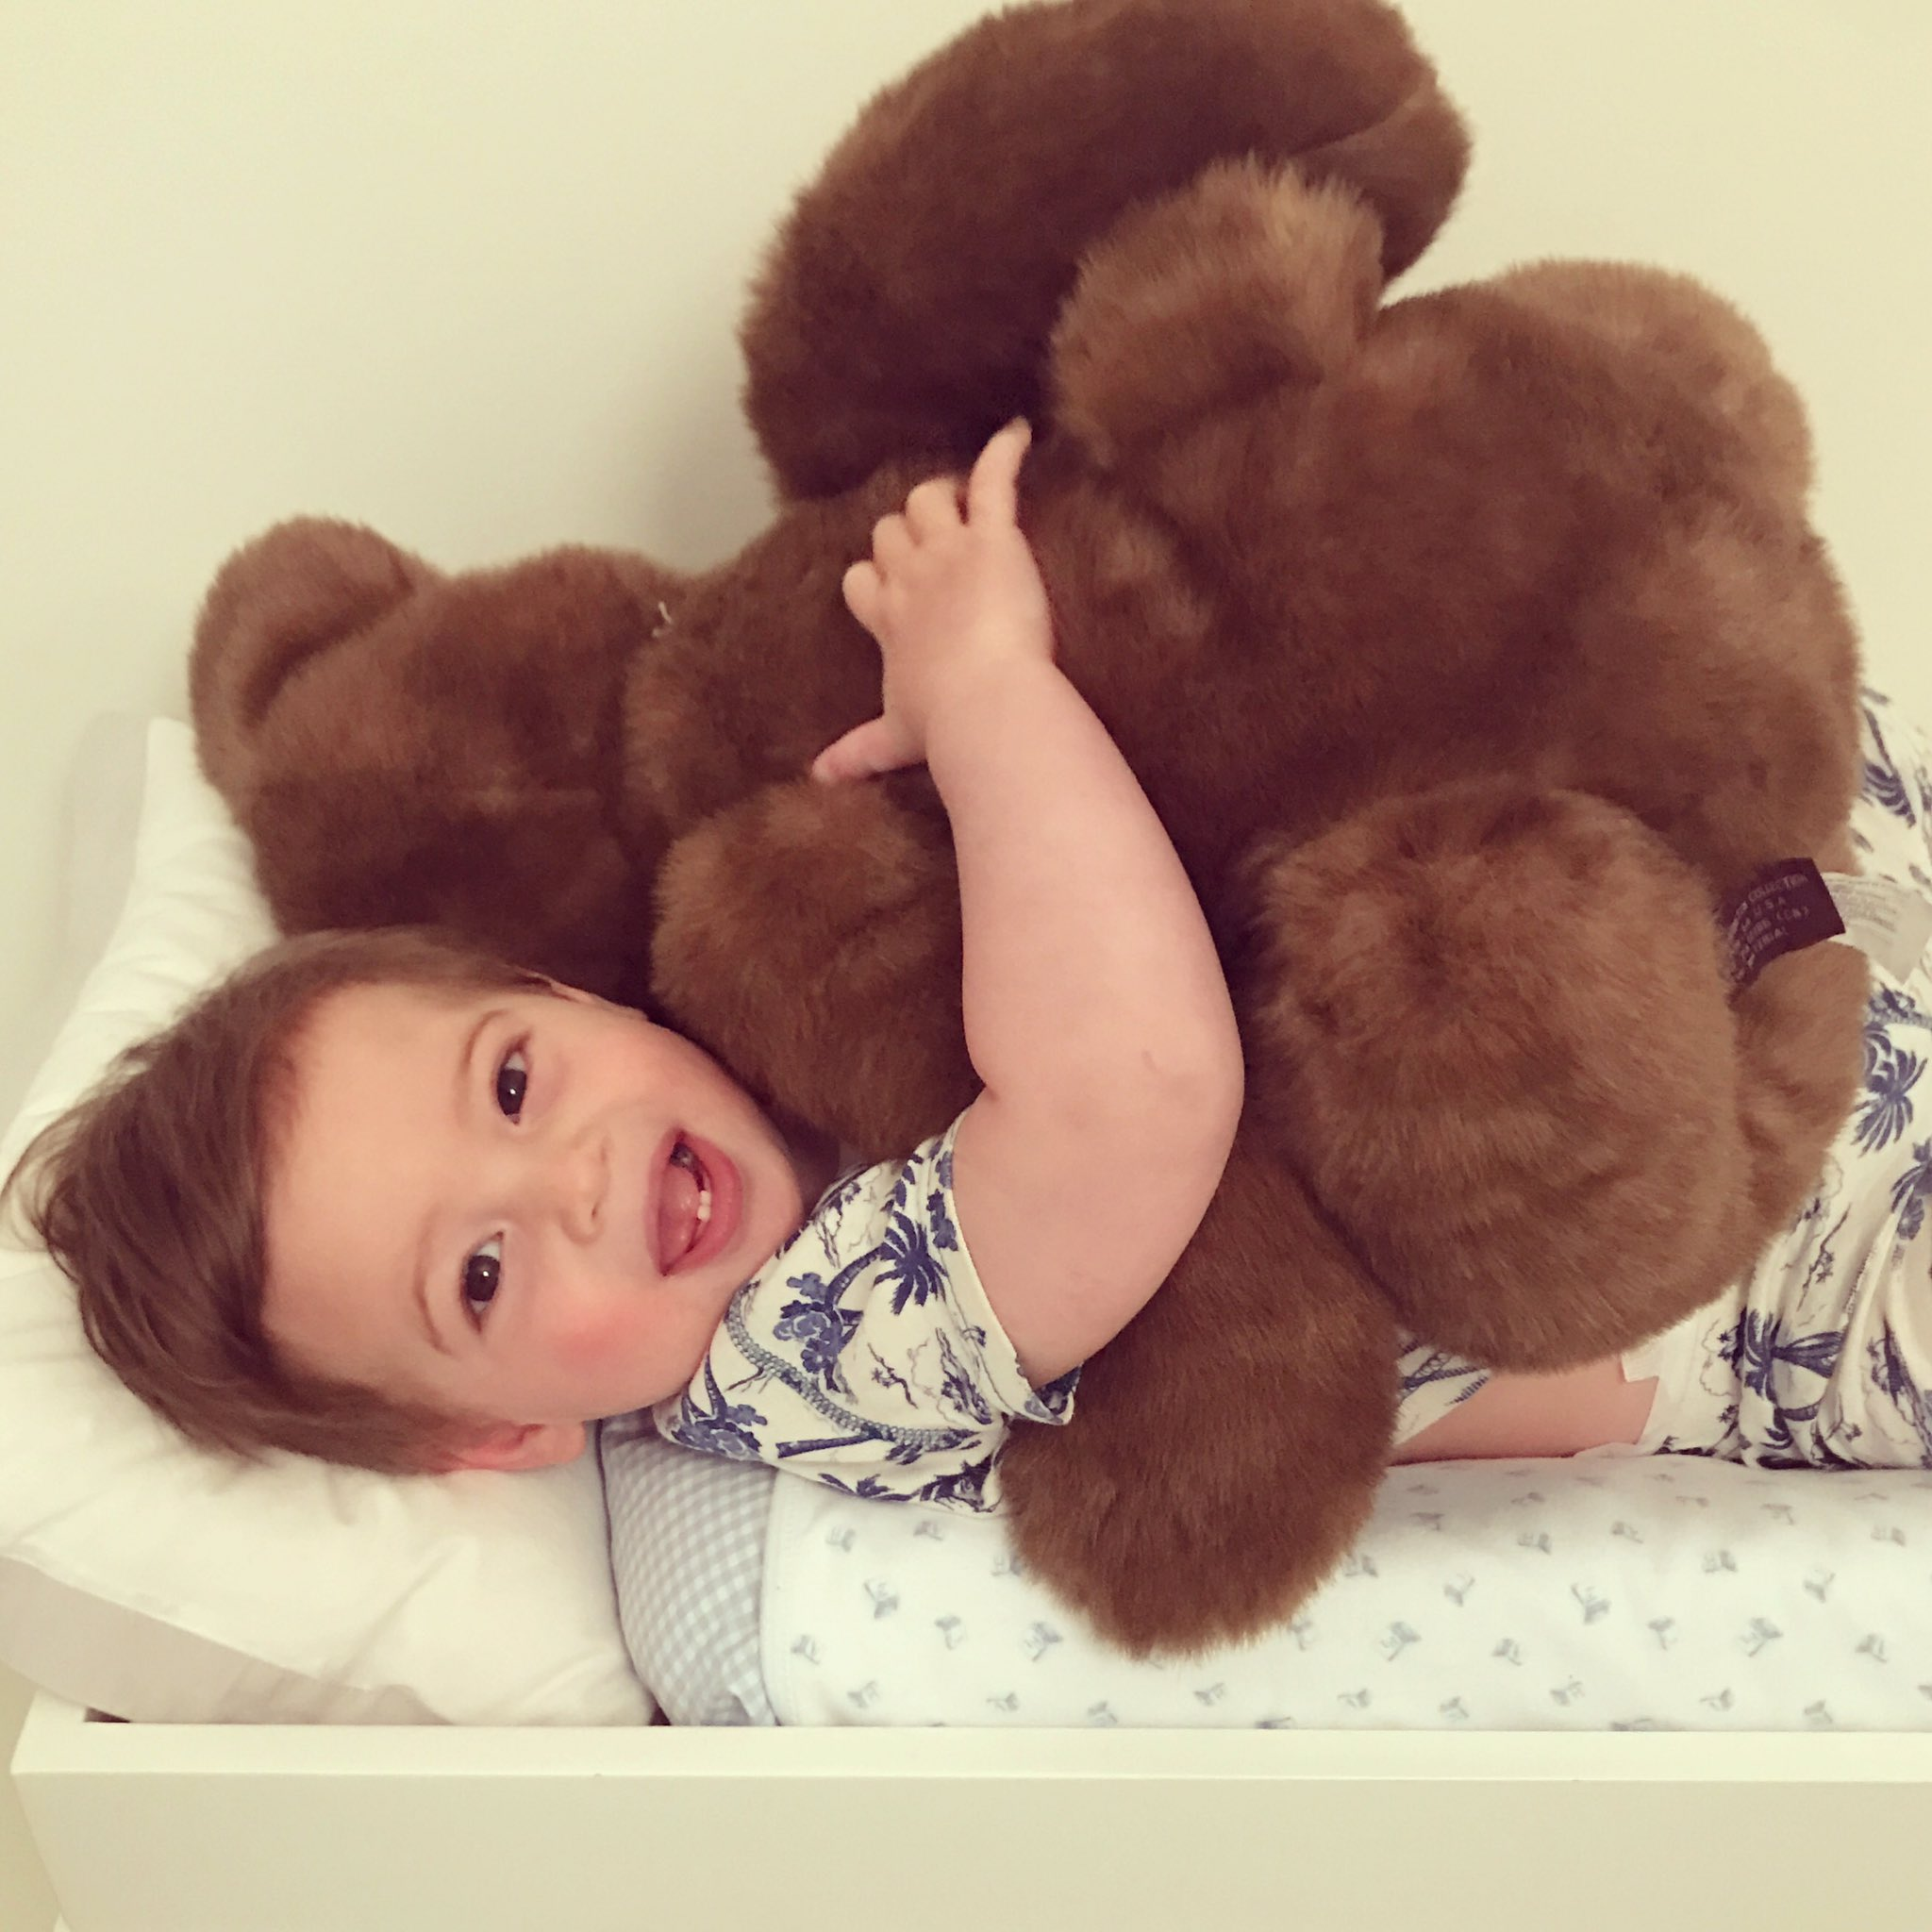 Teddy ���� x Teddy �� https://t.co/LVgTeotGvF